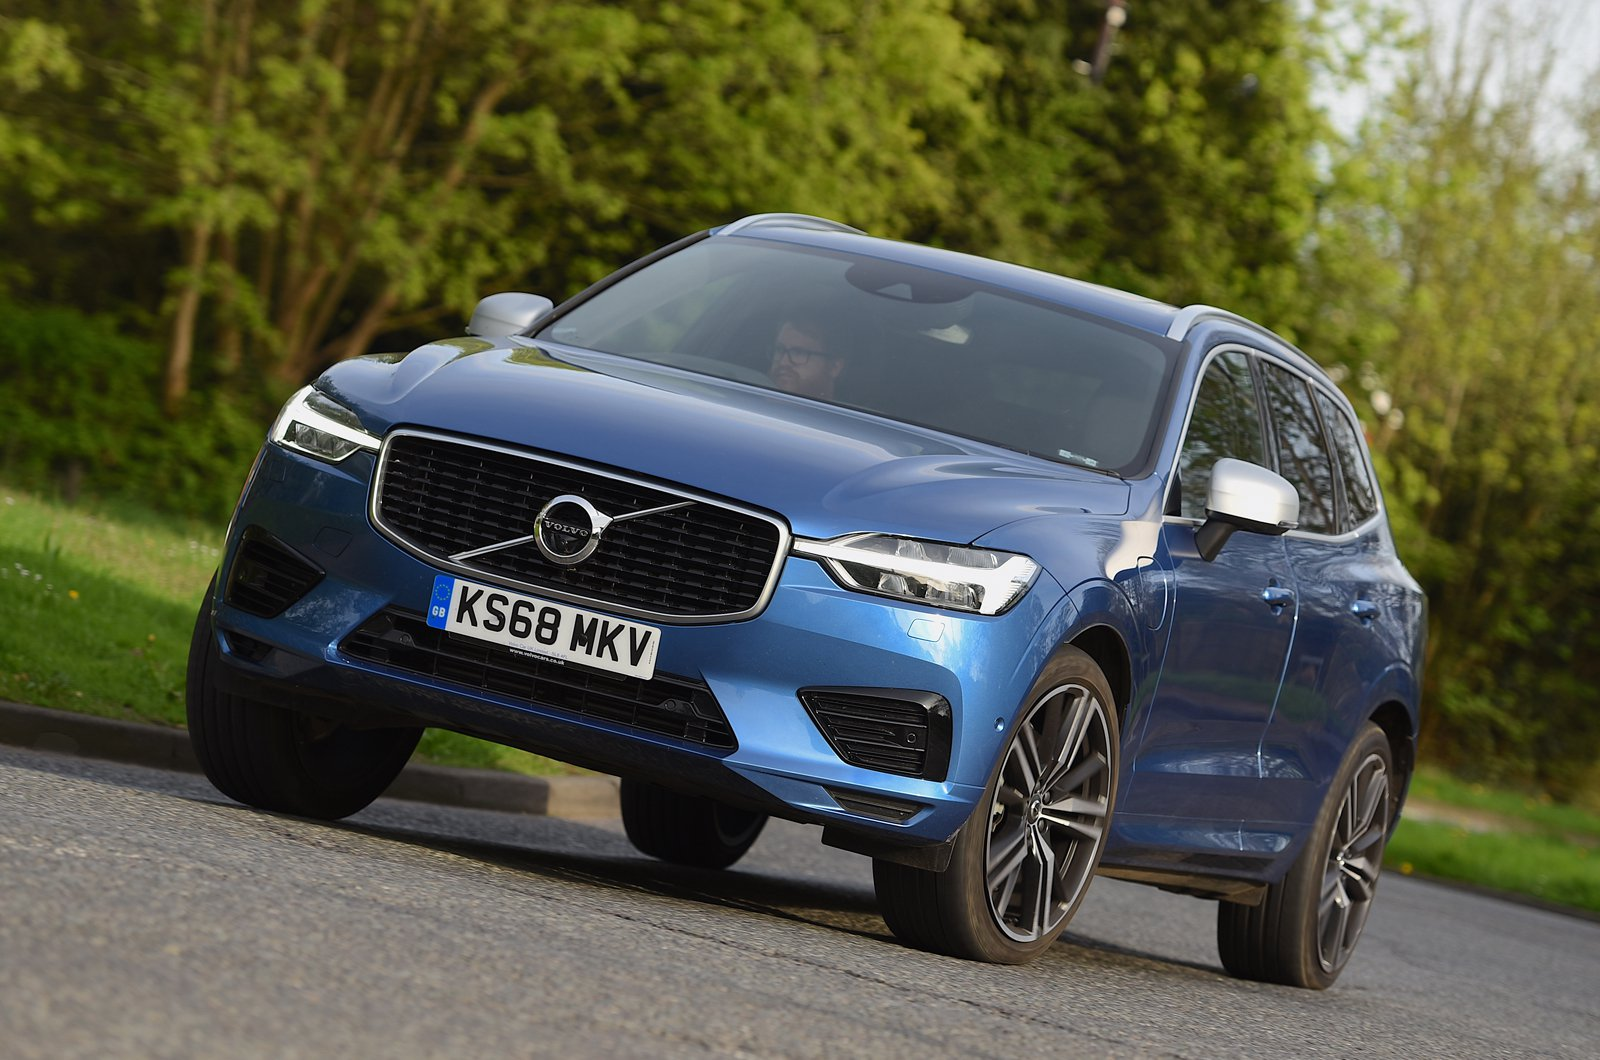 Volvo XC60 T8 - 68 plate